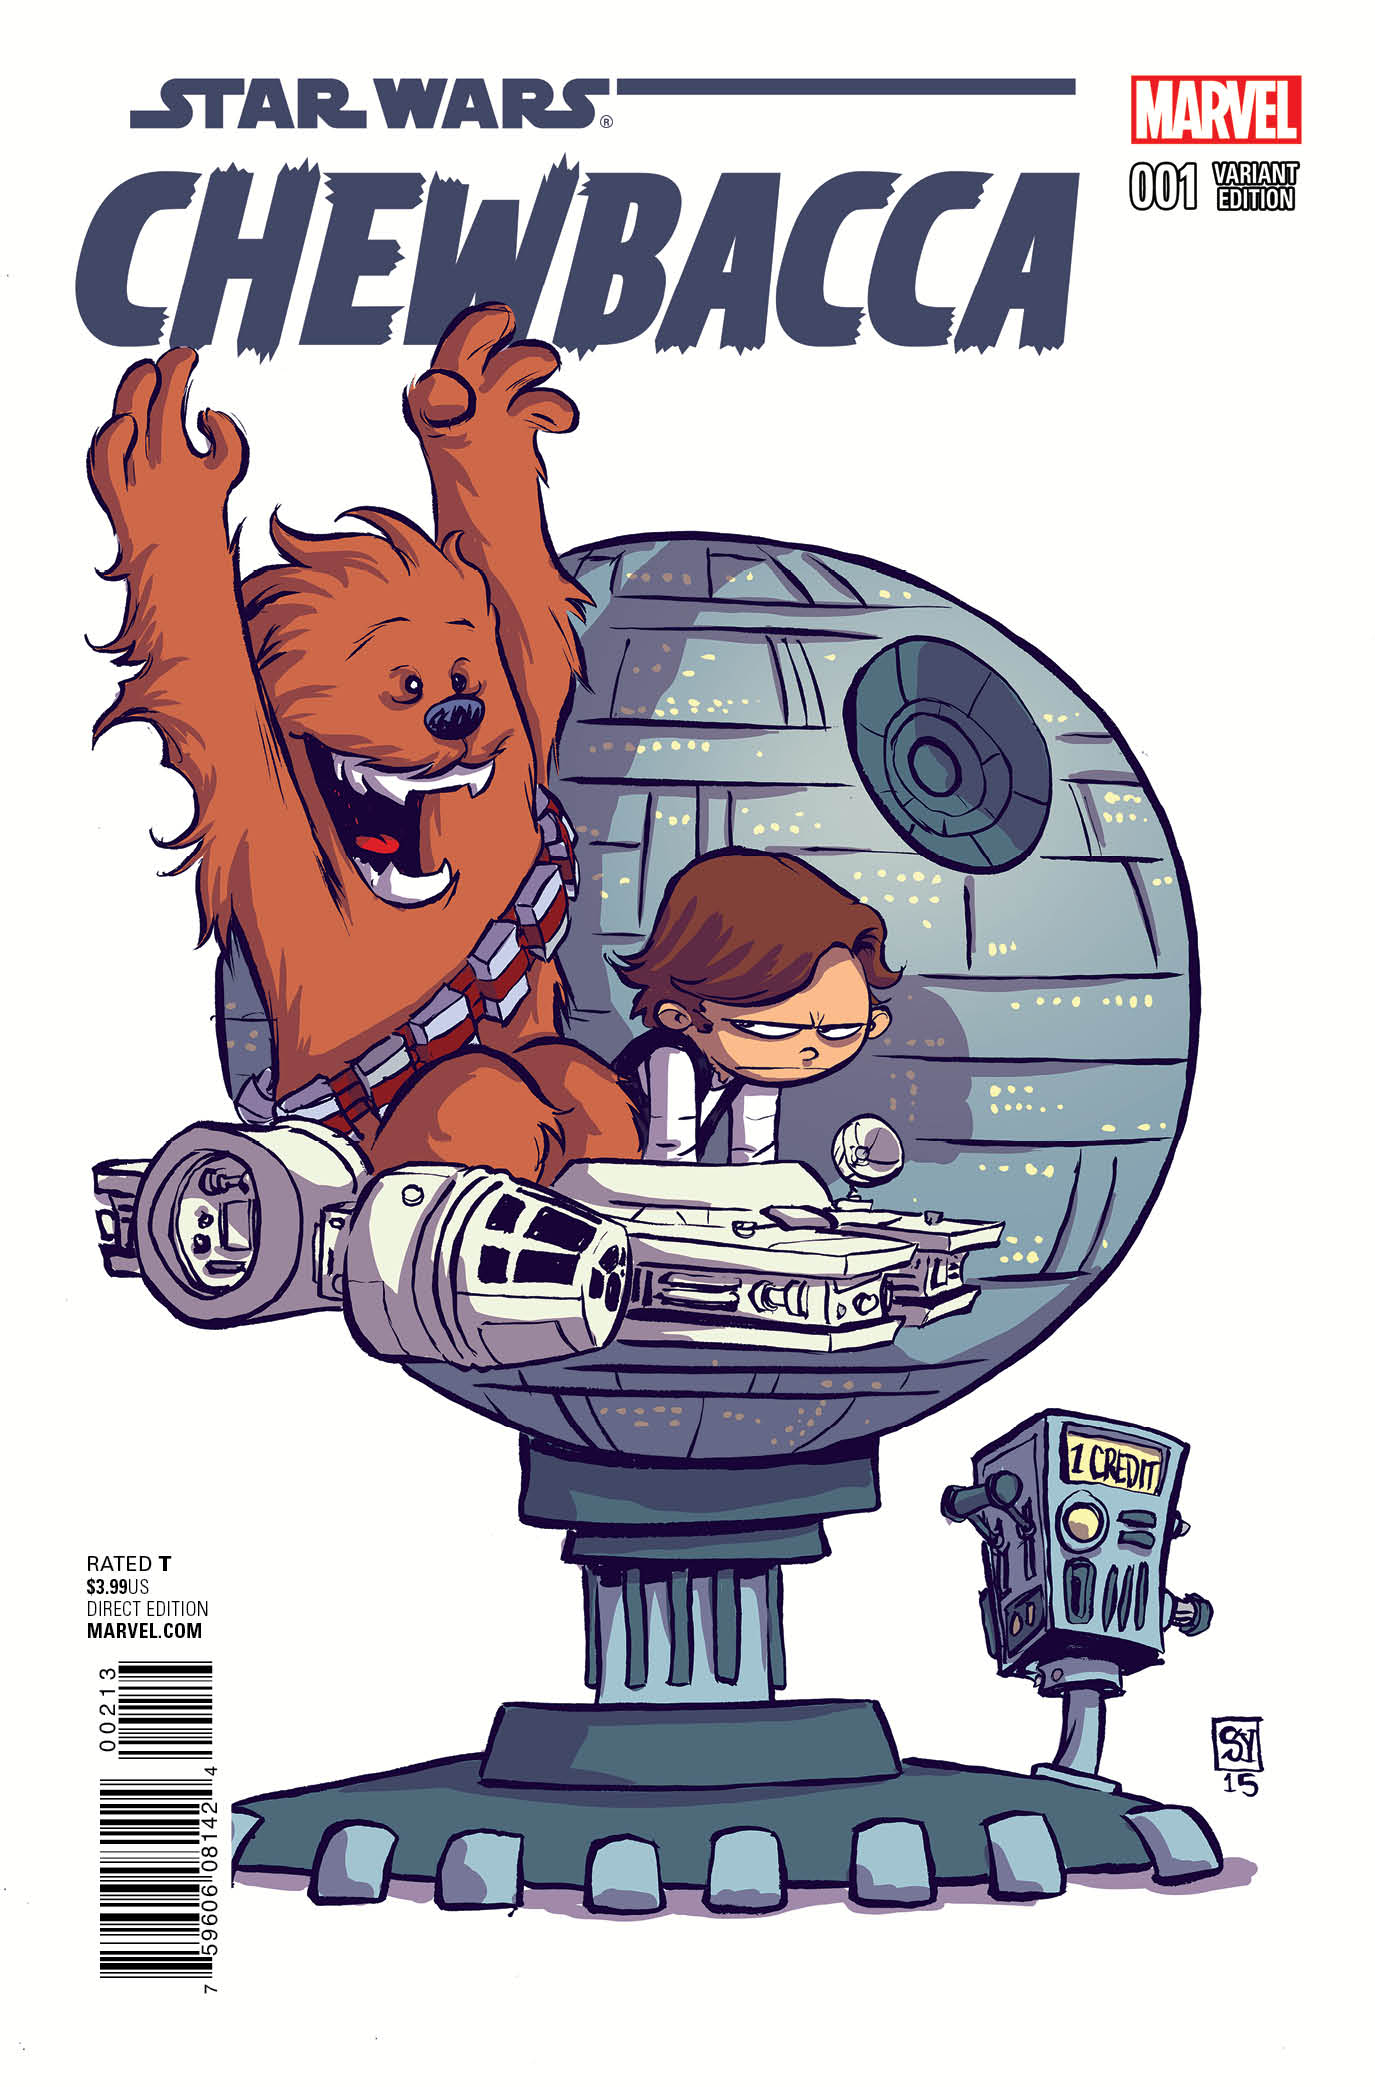 Suicide clipart wookie Wookie Chewbacca the  gives